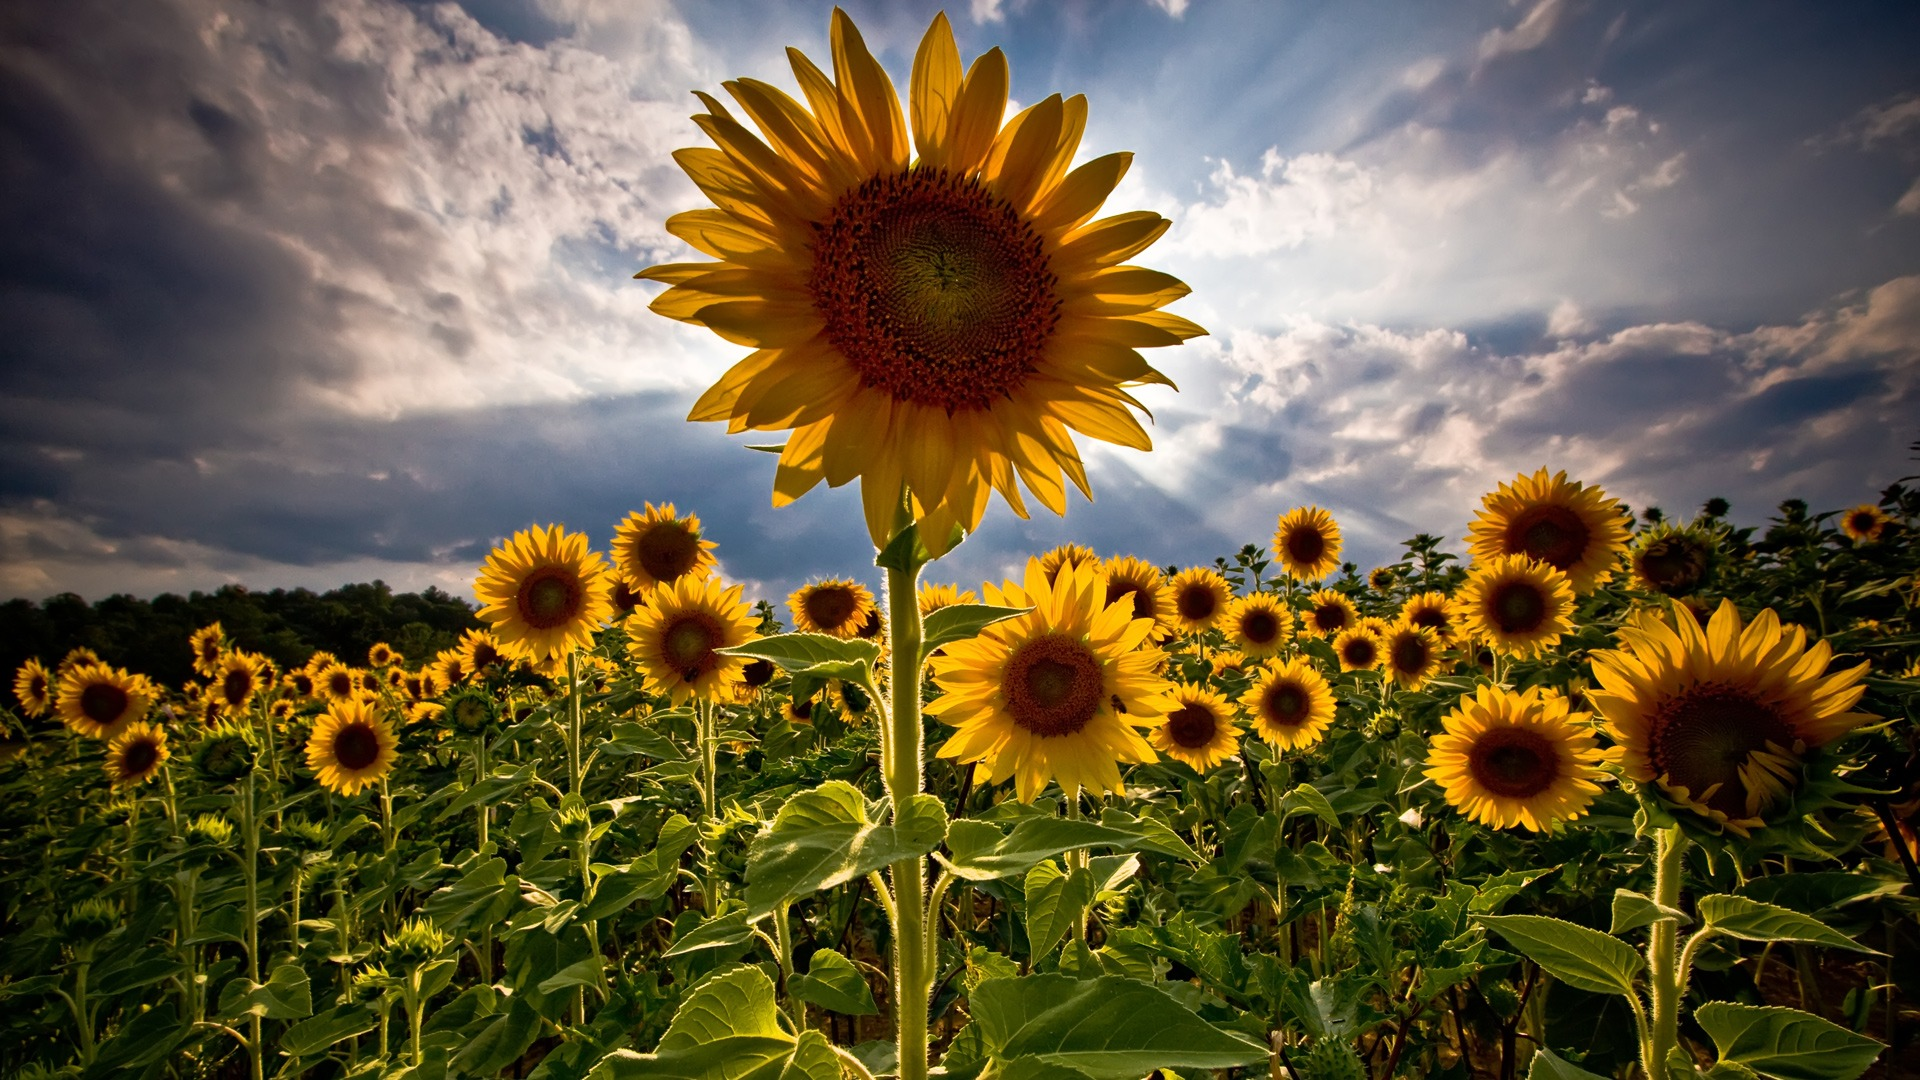 sunflower images to draw